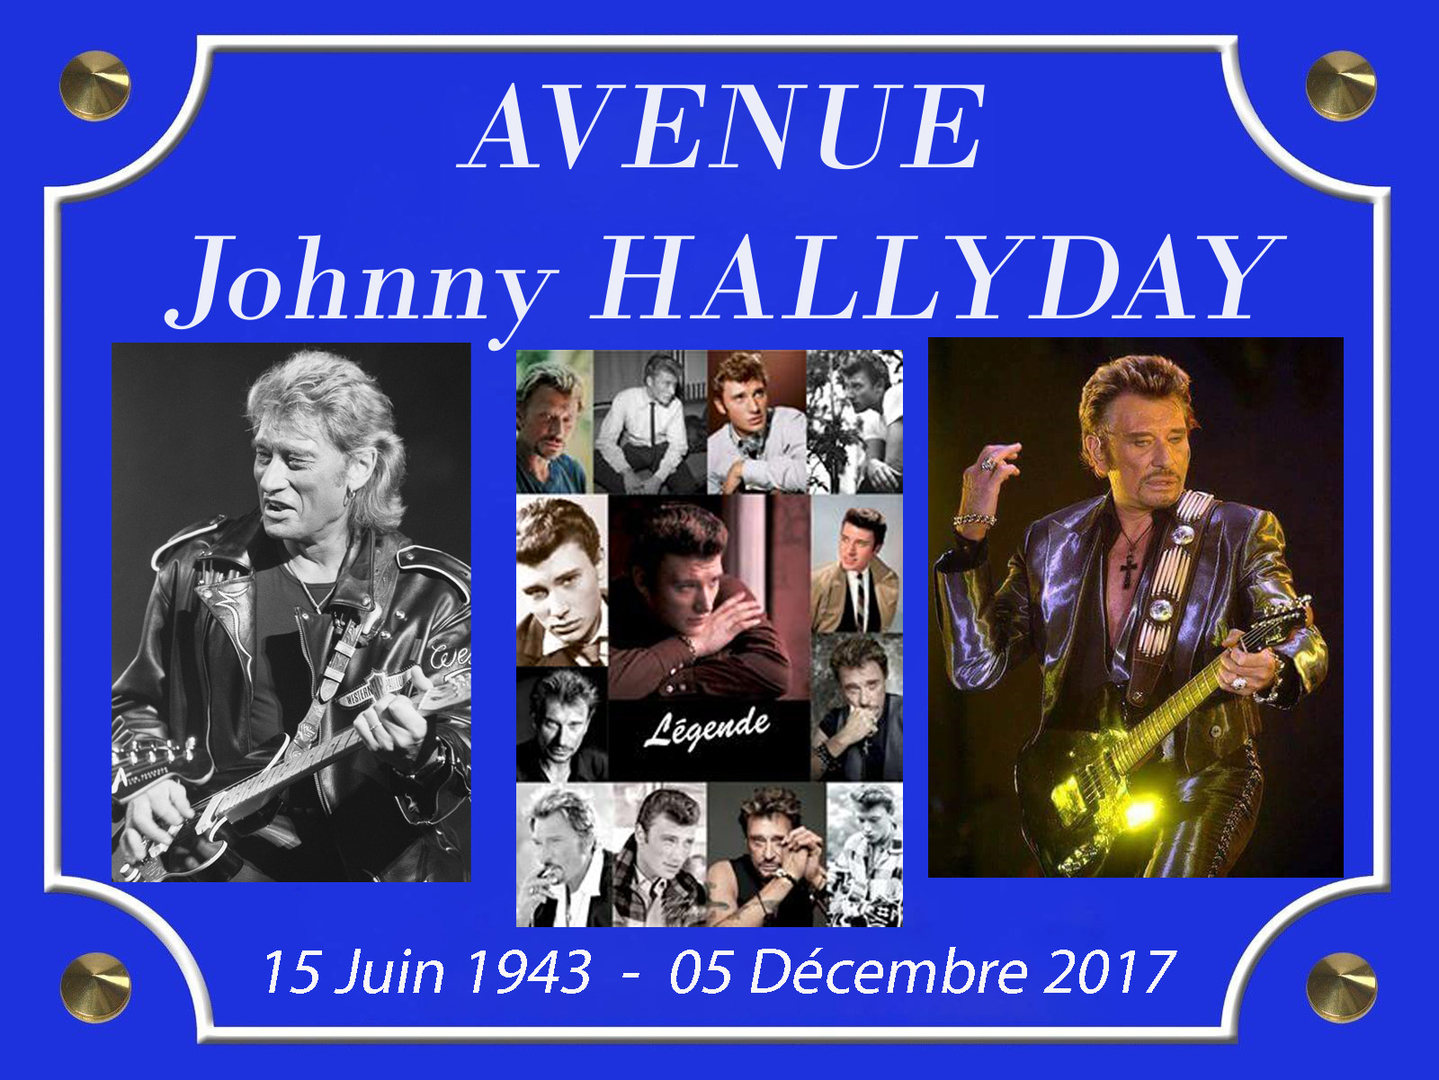 AVENUE Johnny HALLYDAY 3 PHOTO